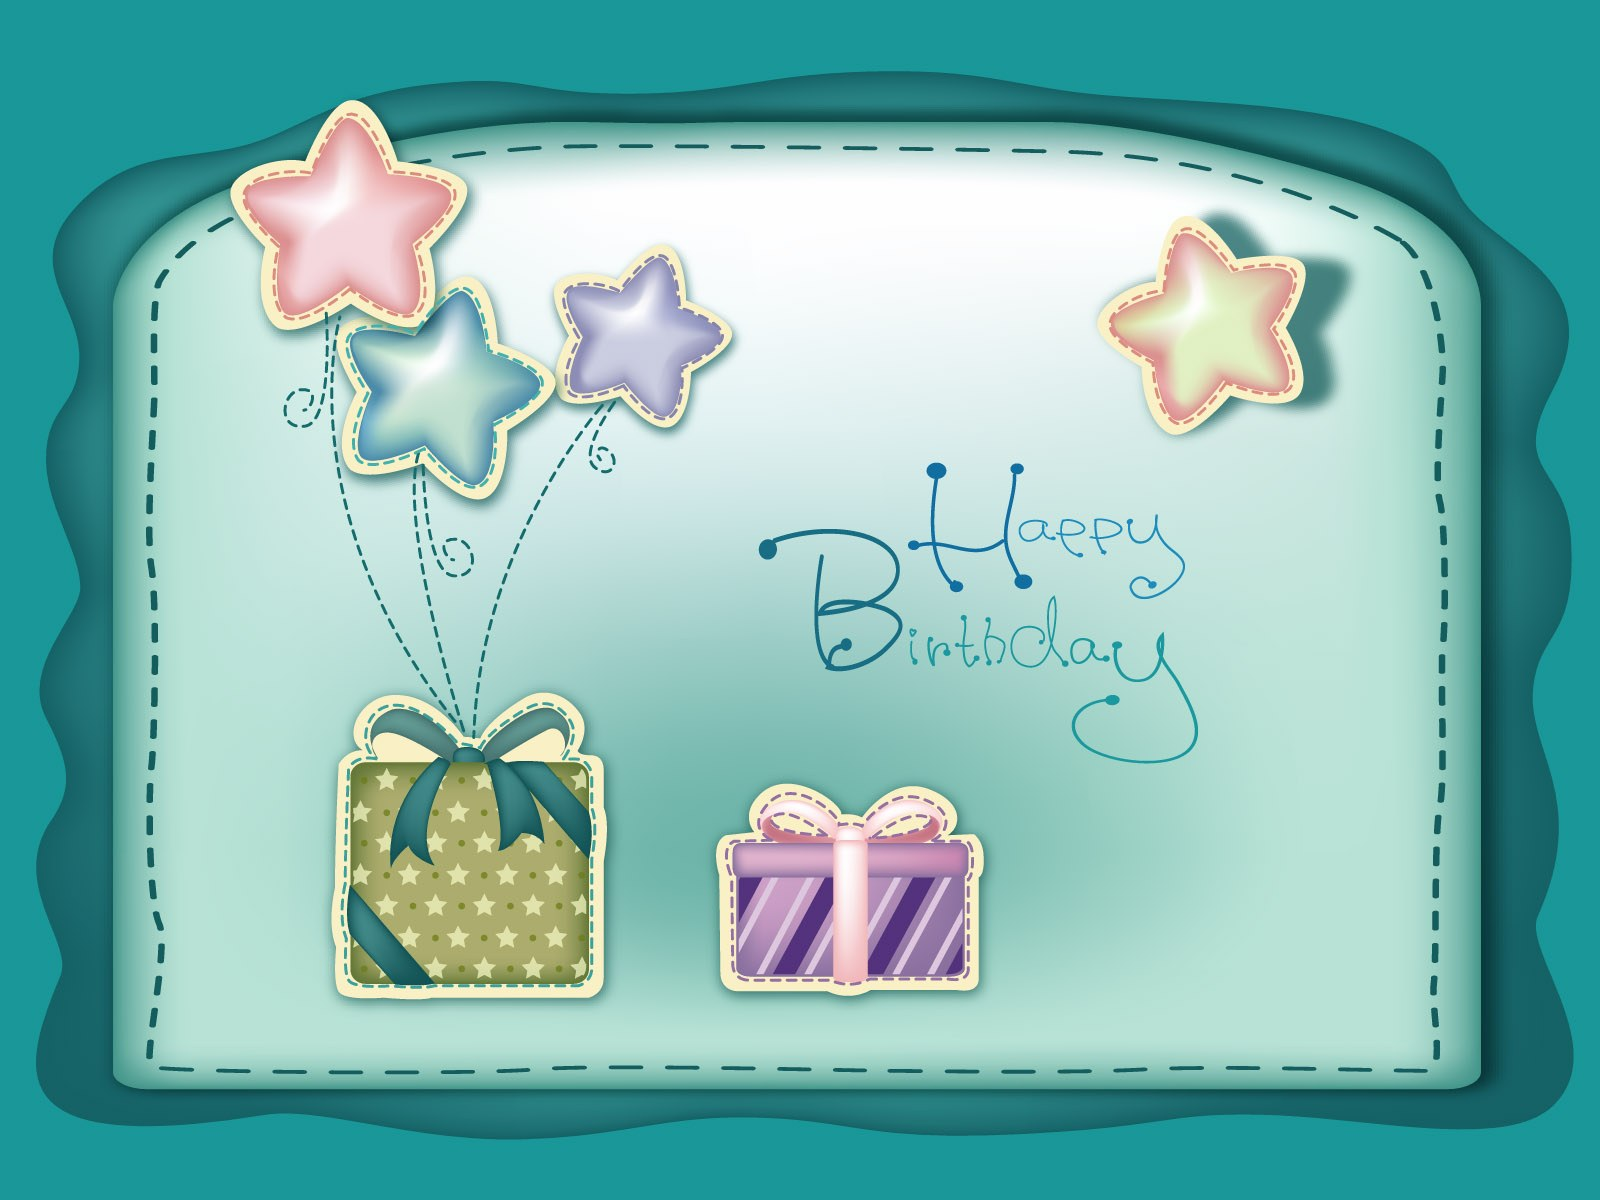 Birthday backgrounds for men |See To World